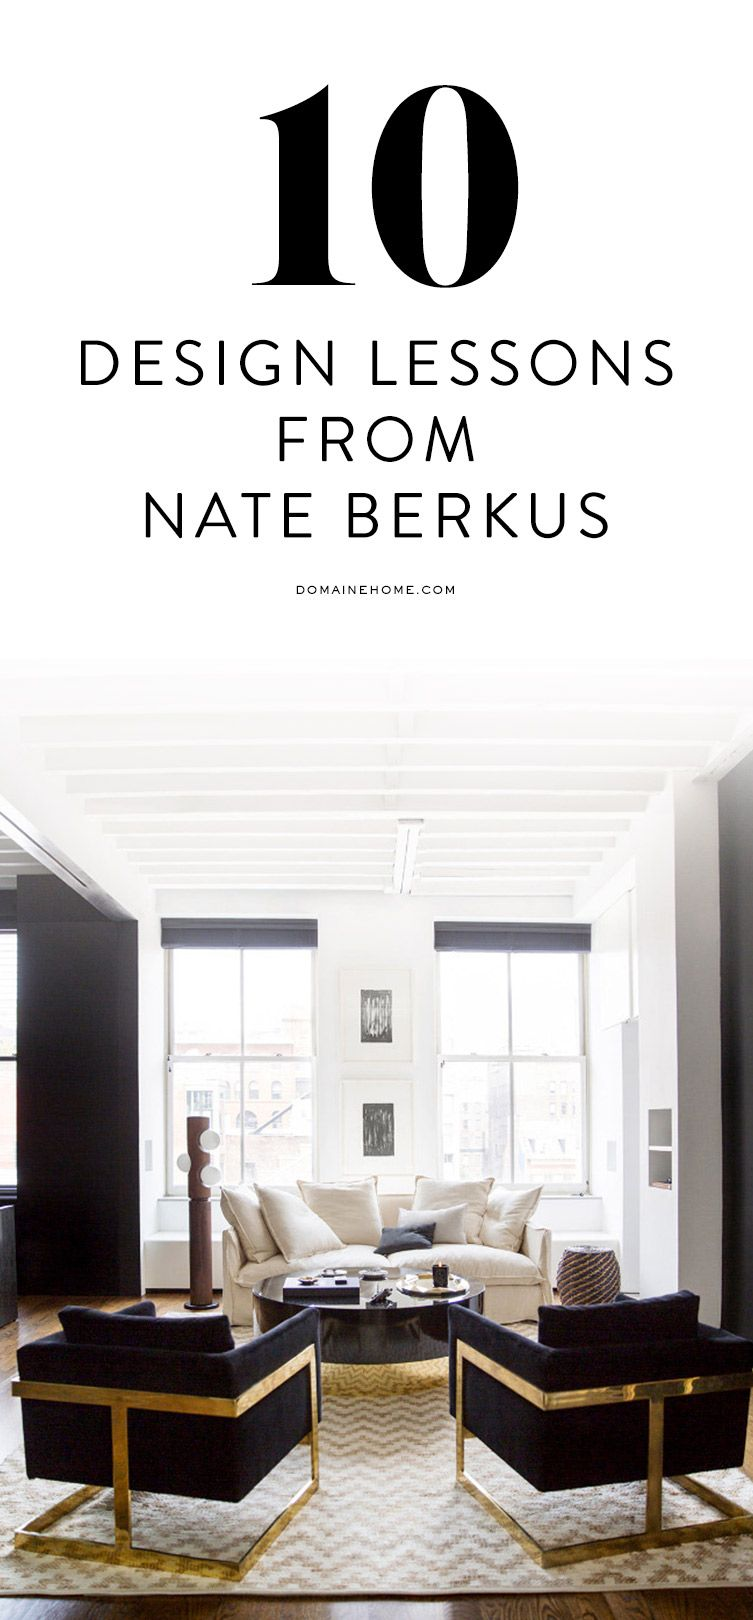 10 Lessons We Learned from Nate Berkus | Nate berkus, Learning and ...